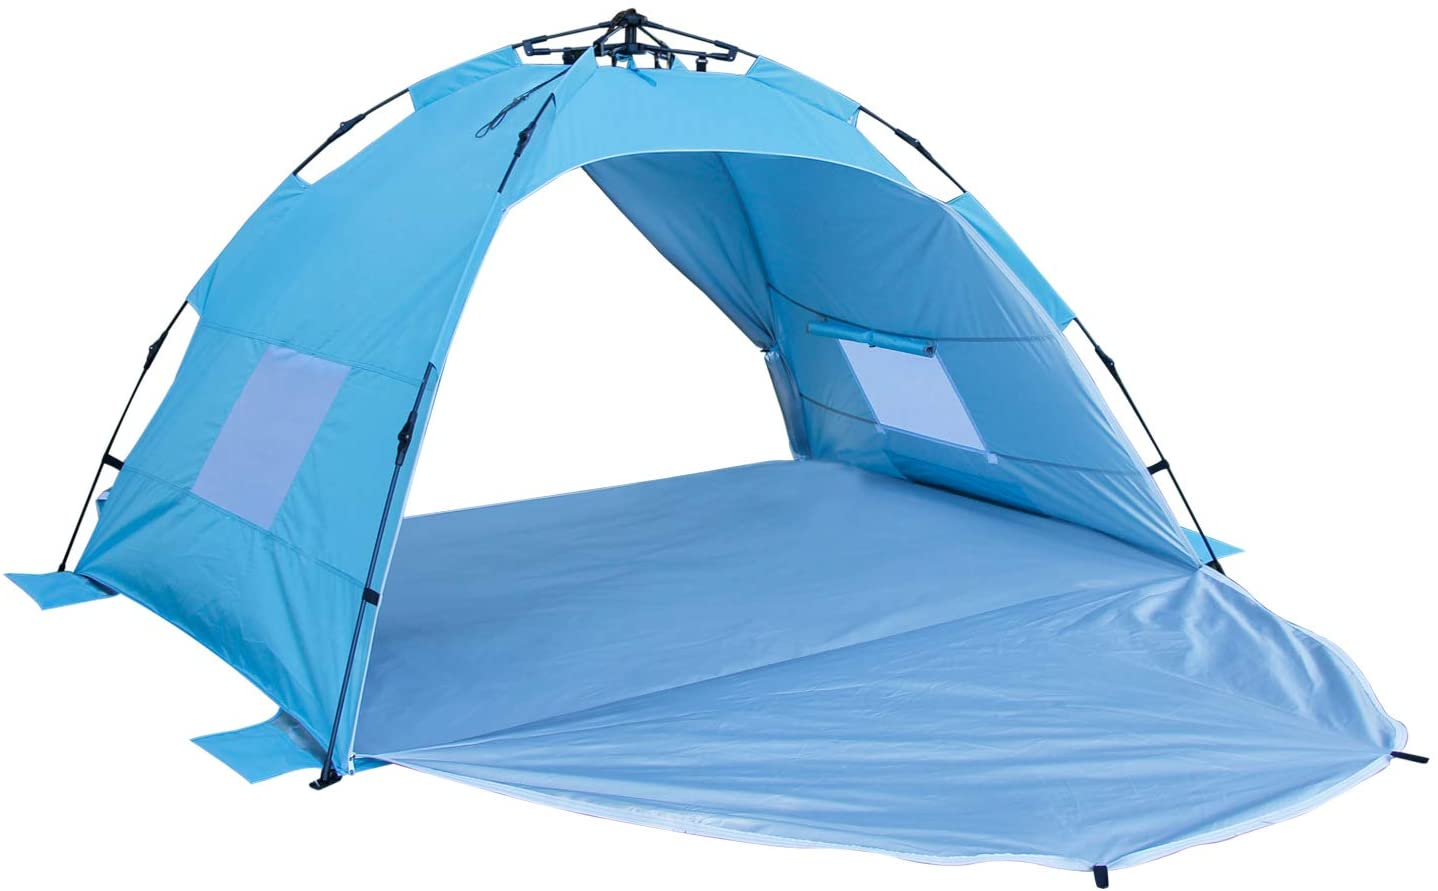 Sun-shelter Beach Tent 3 or 4 Person